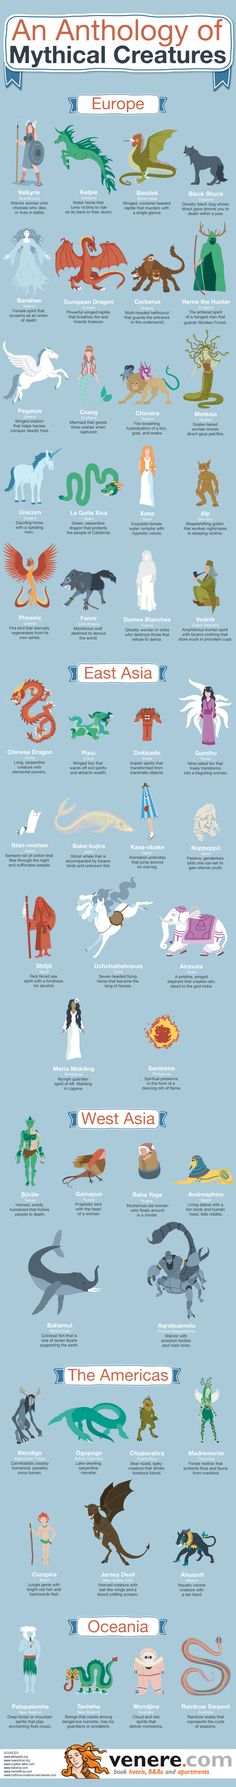 Gods Goddesses Legends Myths: Every civilization has its own #legends and #myths. Let's find out the 50 most important - and weird - legendary creatures with this Infographic!